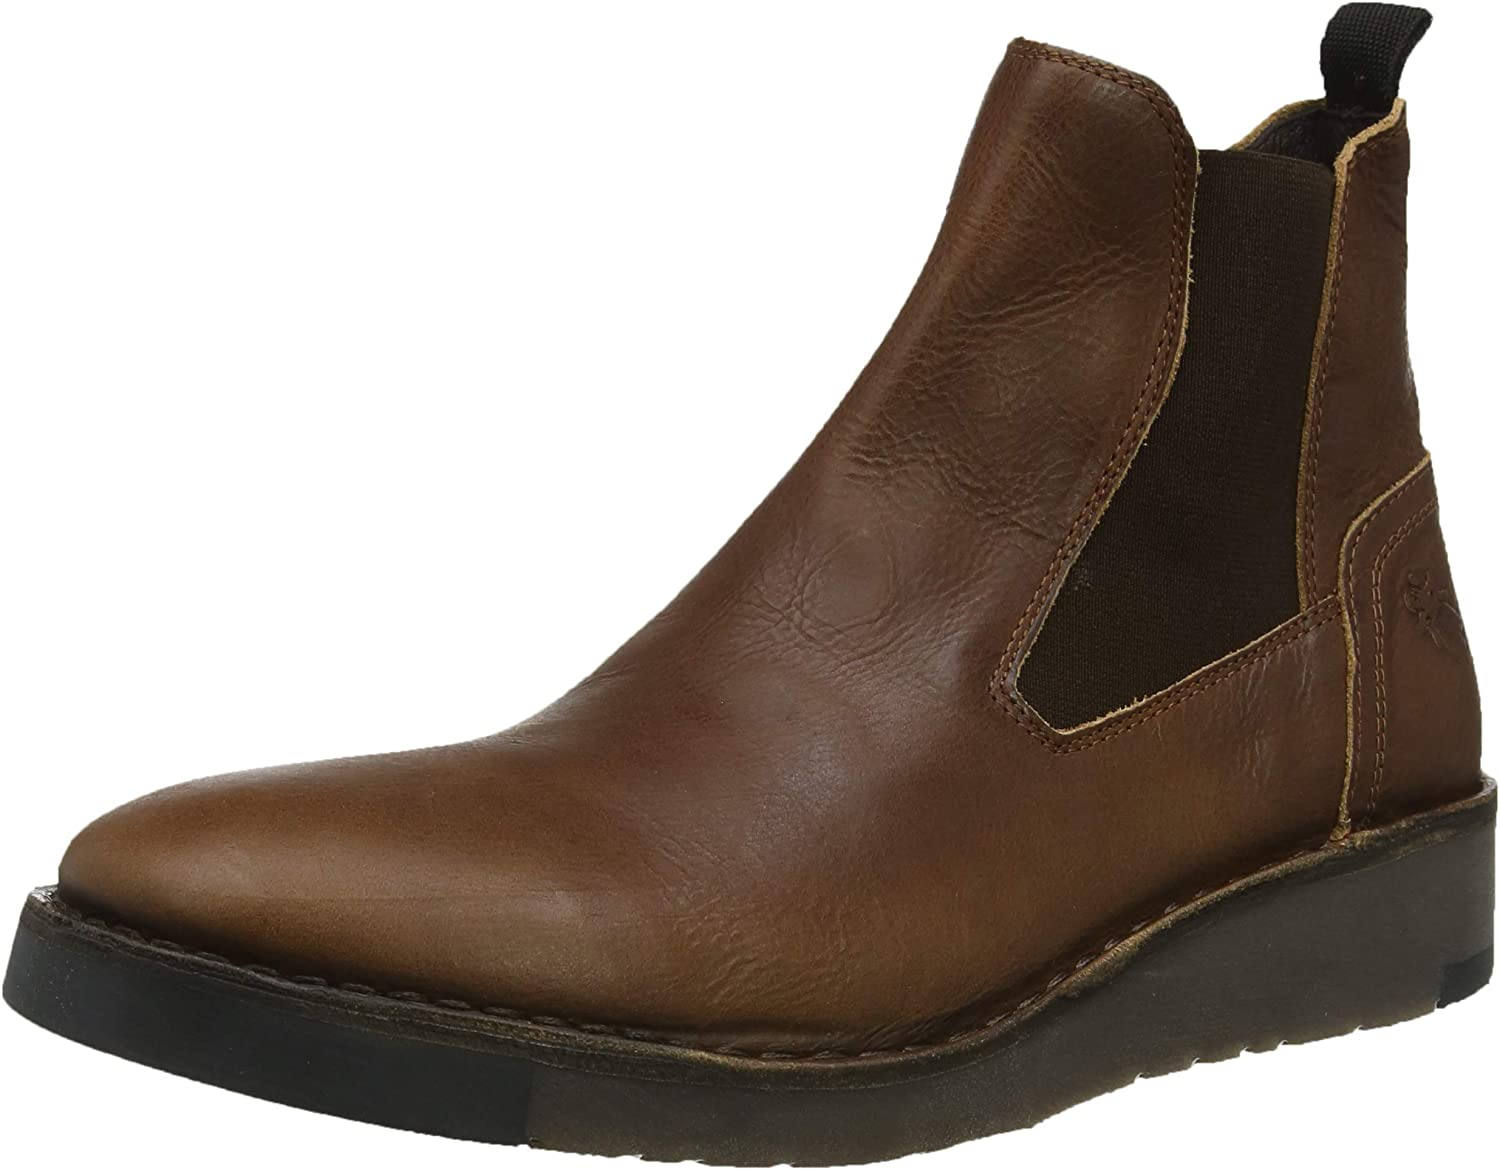 Long-awaited FLY London Men's Boots Tulsa Mall Ankle Classic